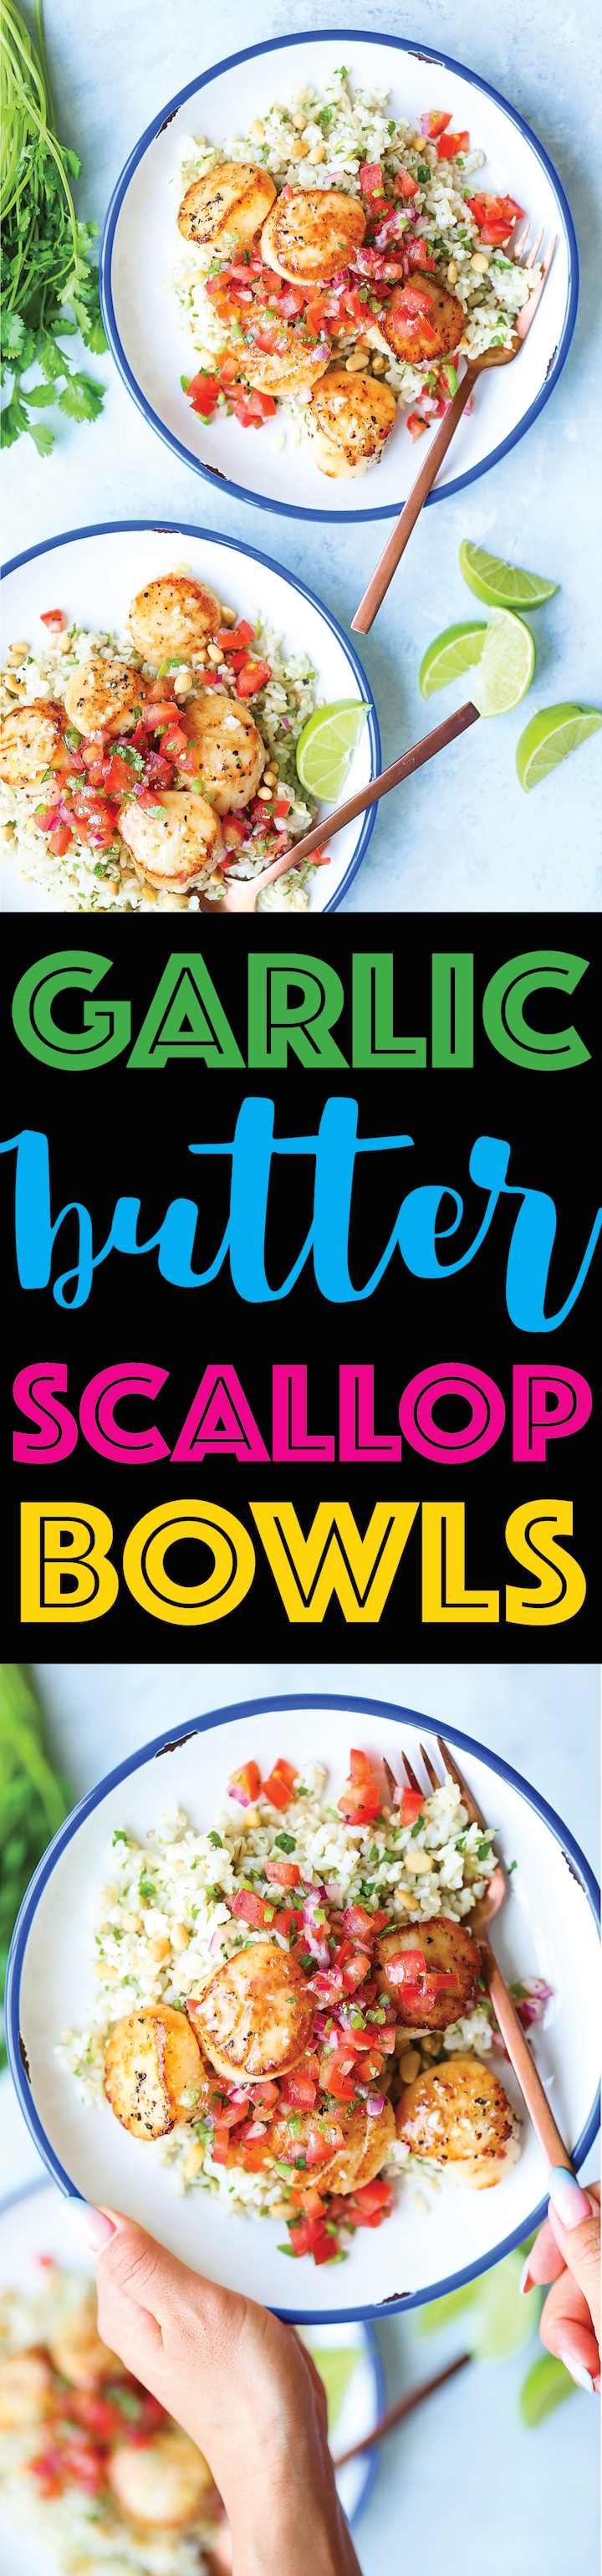 Garlic Butter Scallop Bowls - The butteriest, garlicky scallops ever! It just melts in your mouth! Served with the best cilantro lime rice + pico de gallo!